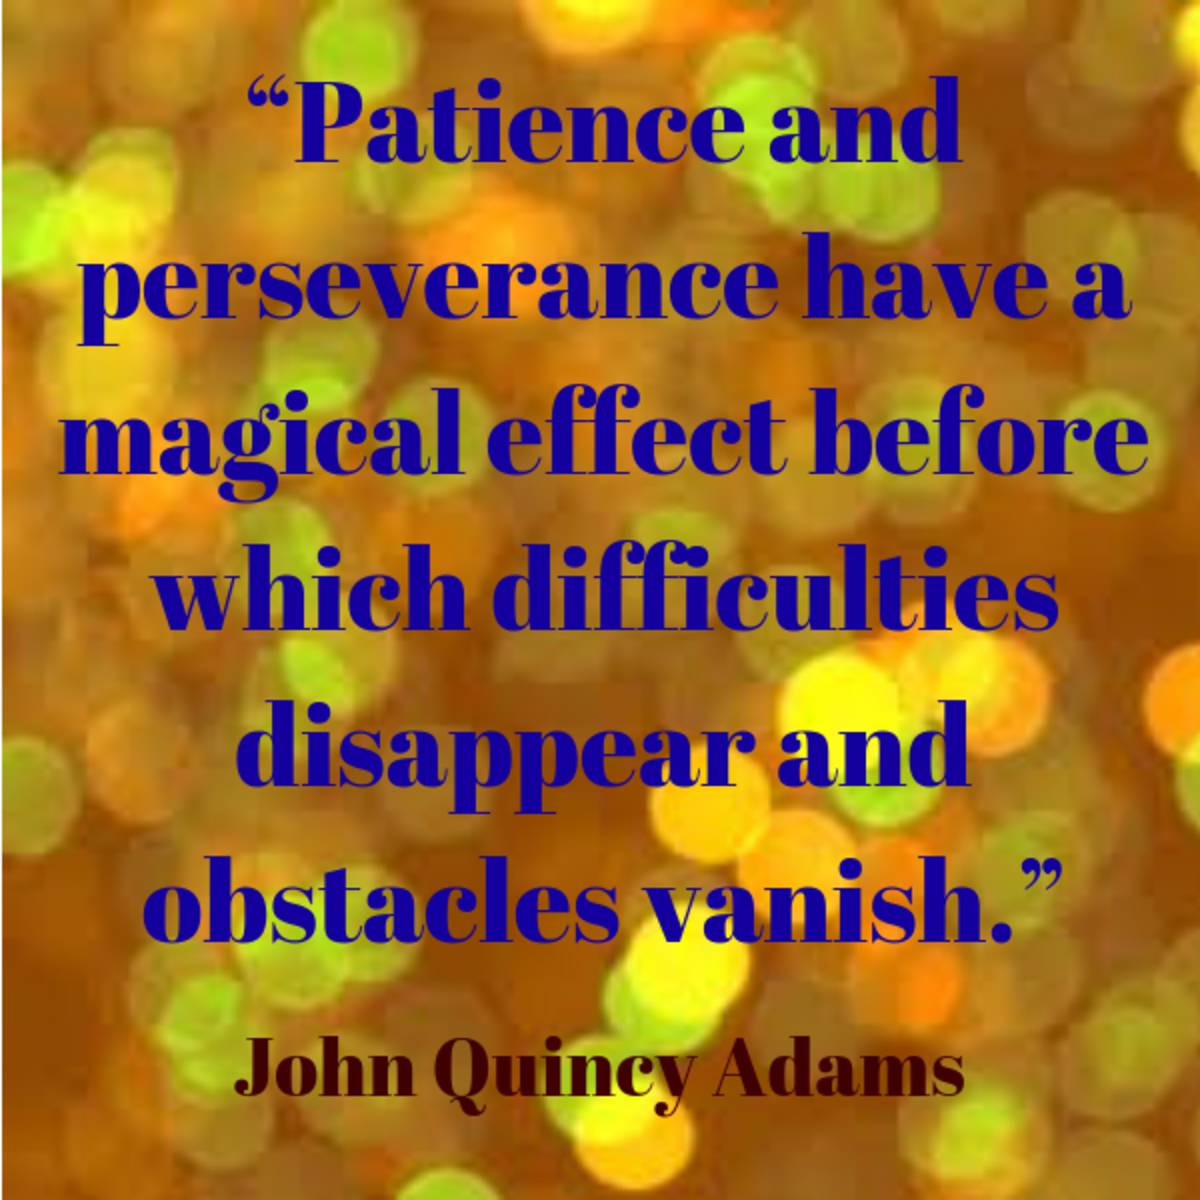 quotes-about-patience--with-kids